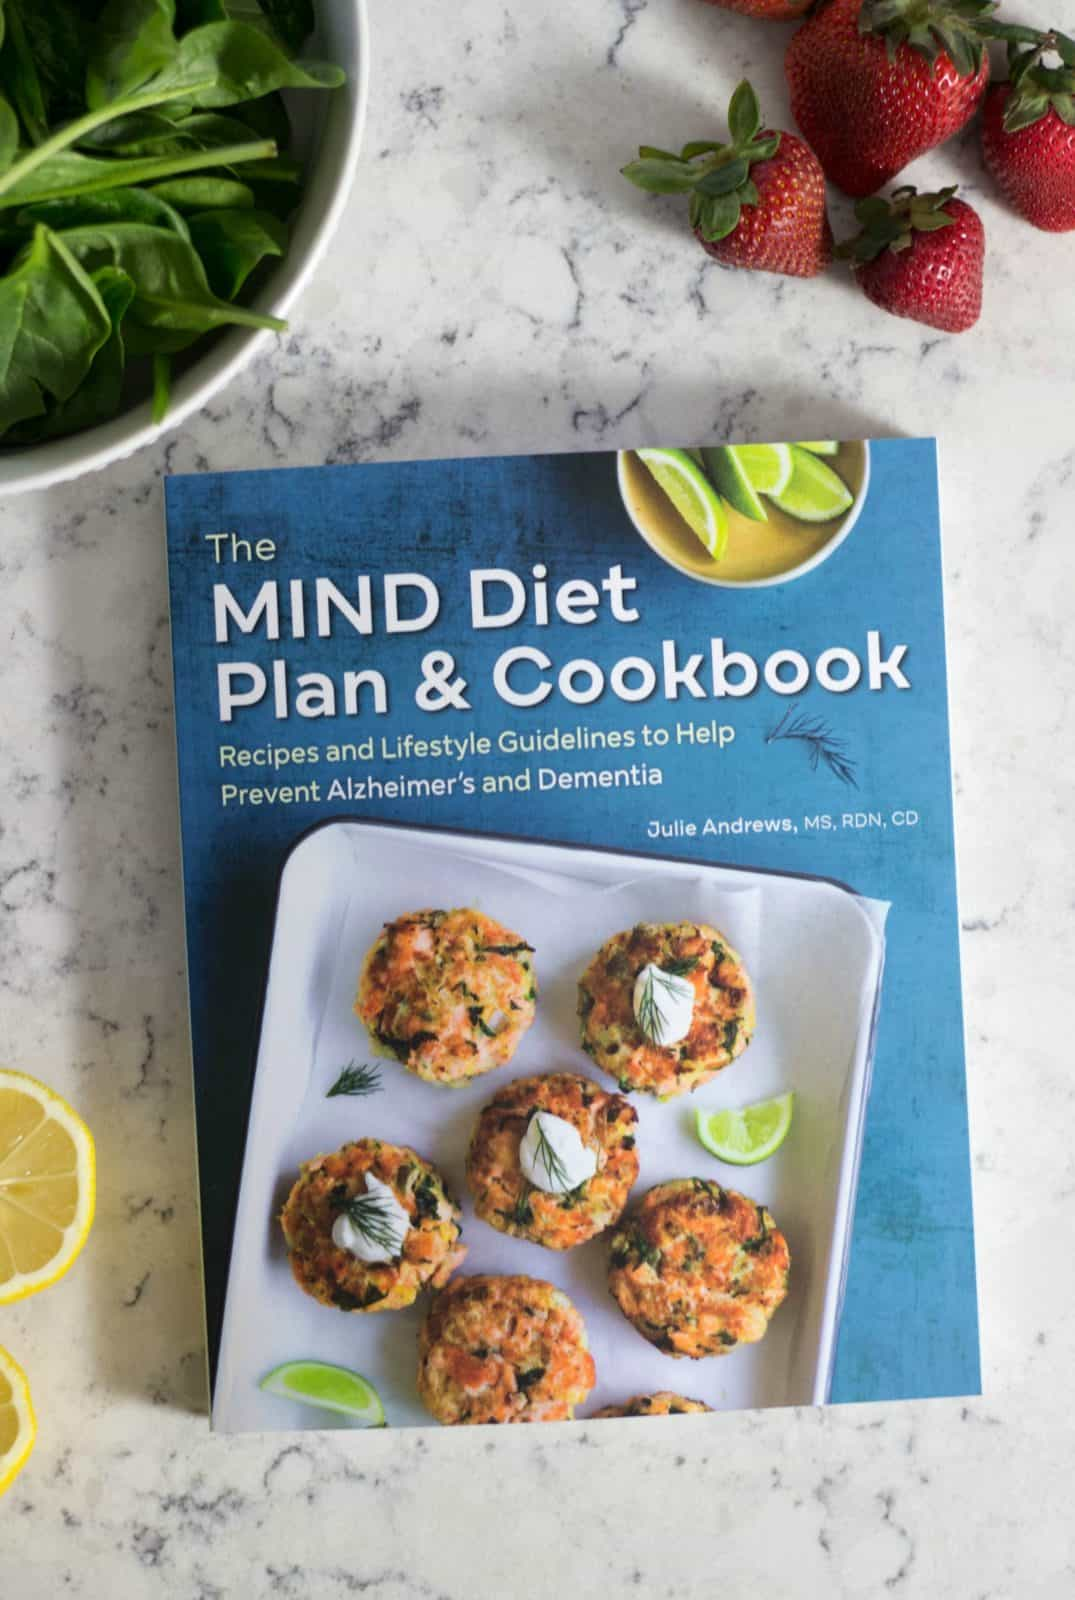 MIND Diet Cookbook on a white marble counter